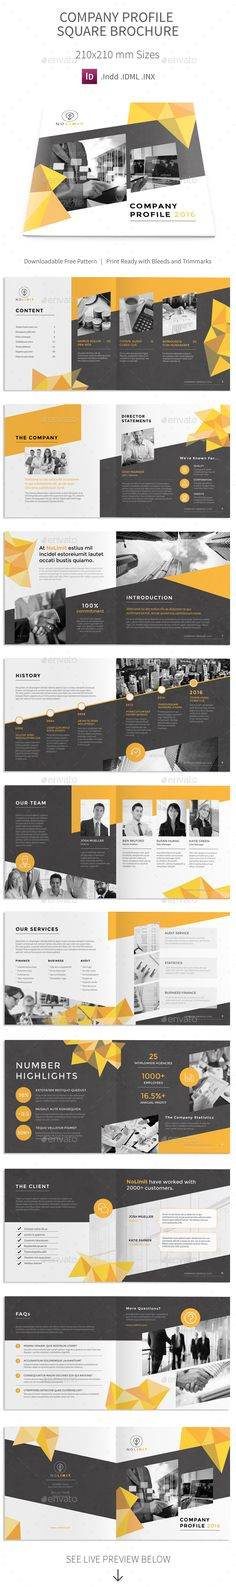 Company Profile Template Company profile, Brochure template and - company profile sample download